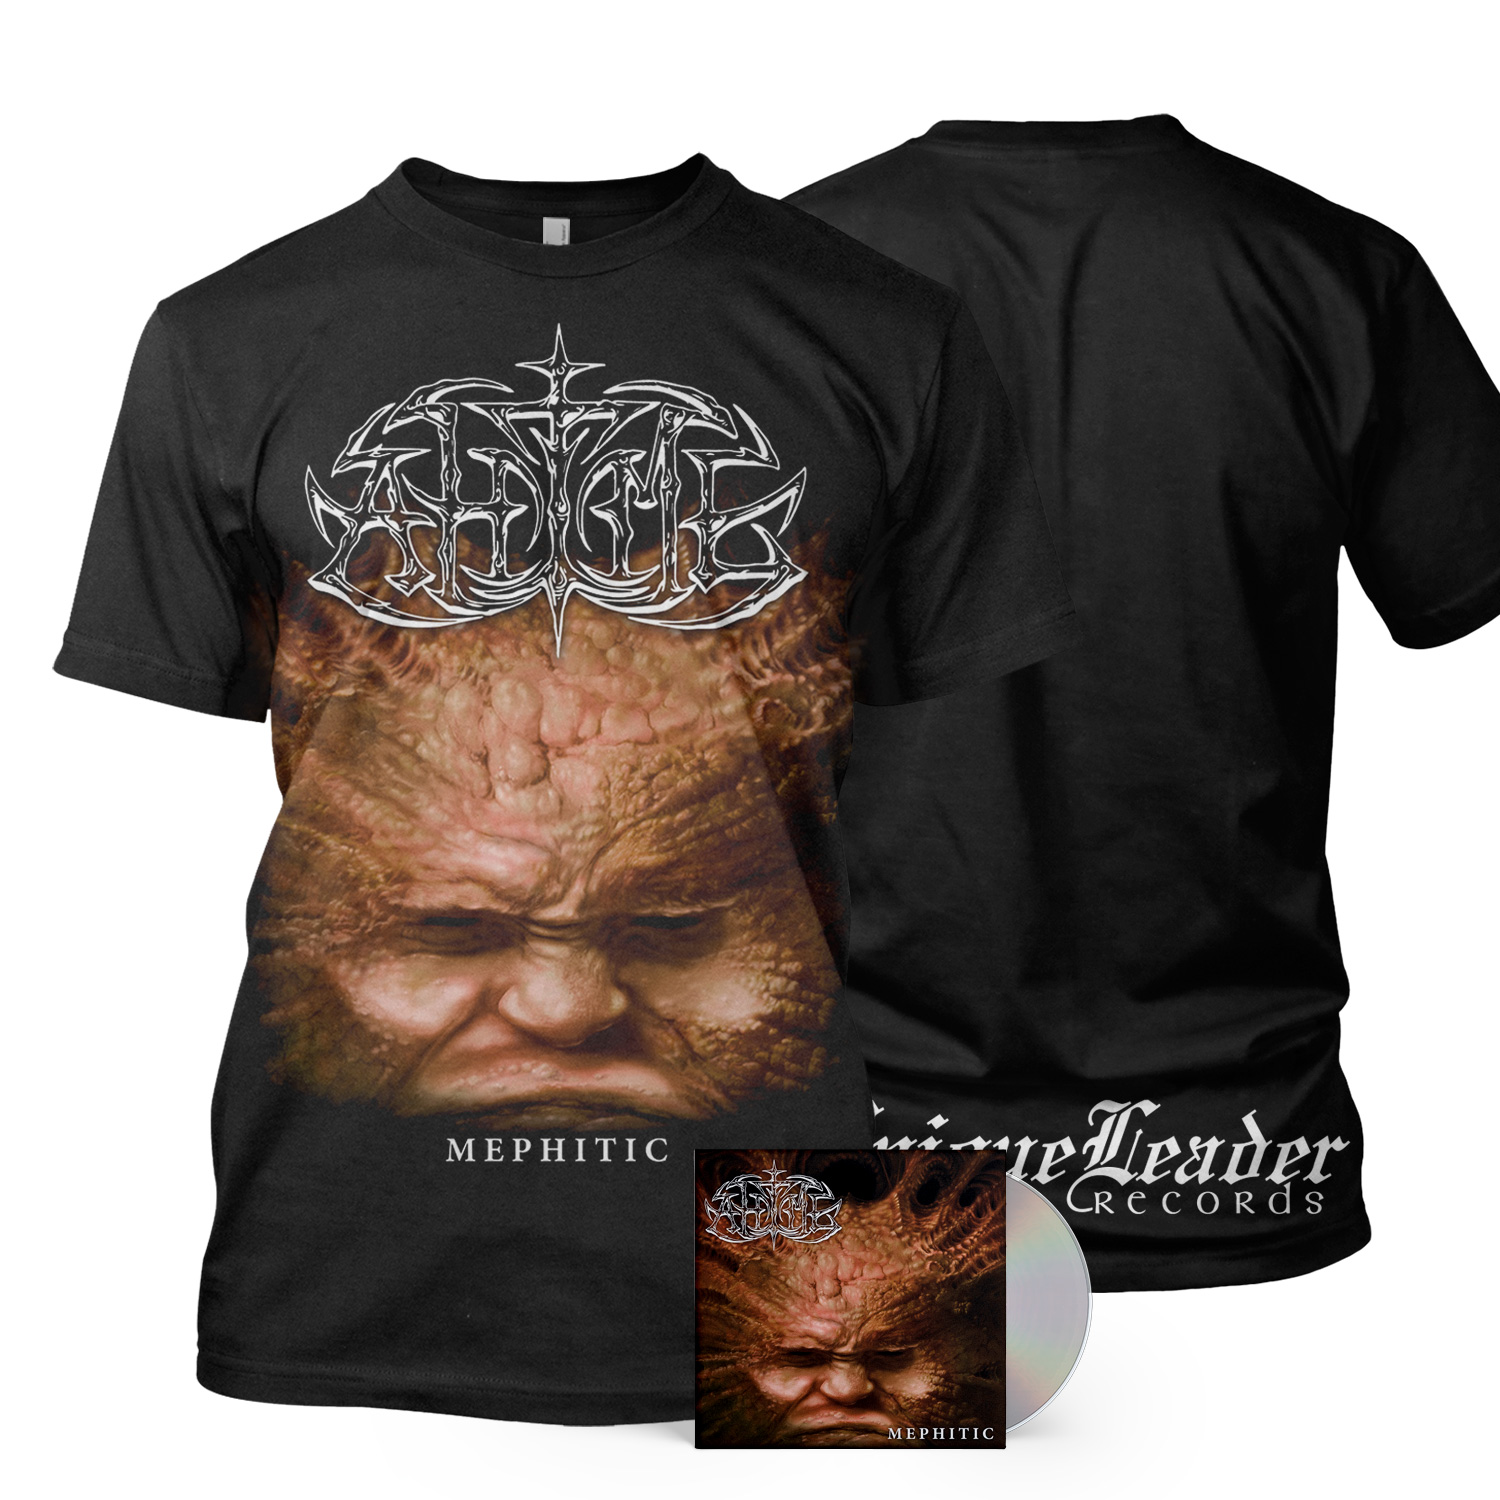 Mephitic CD + Tee Bundle